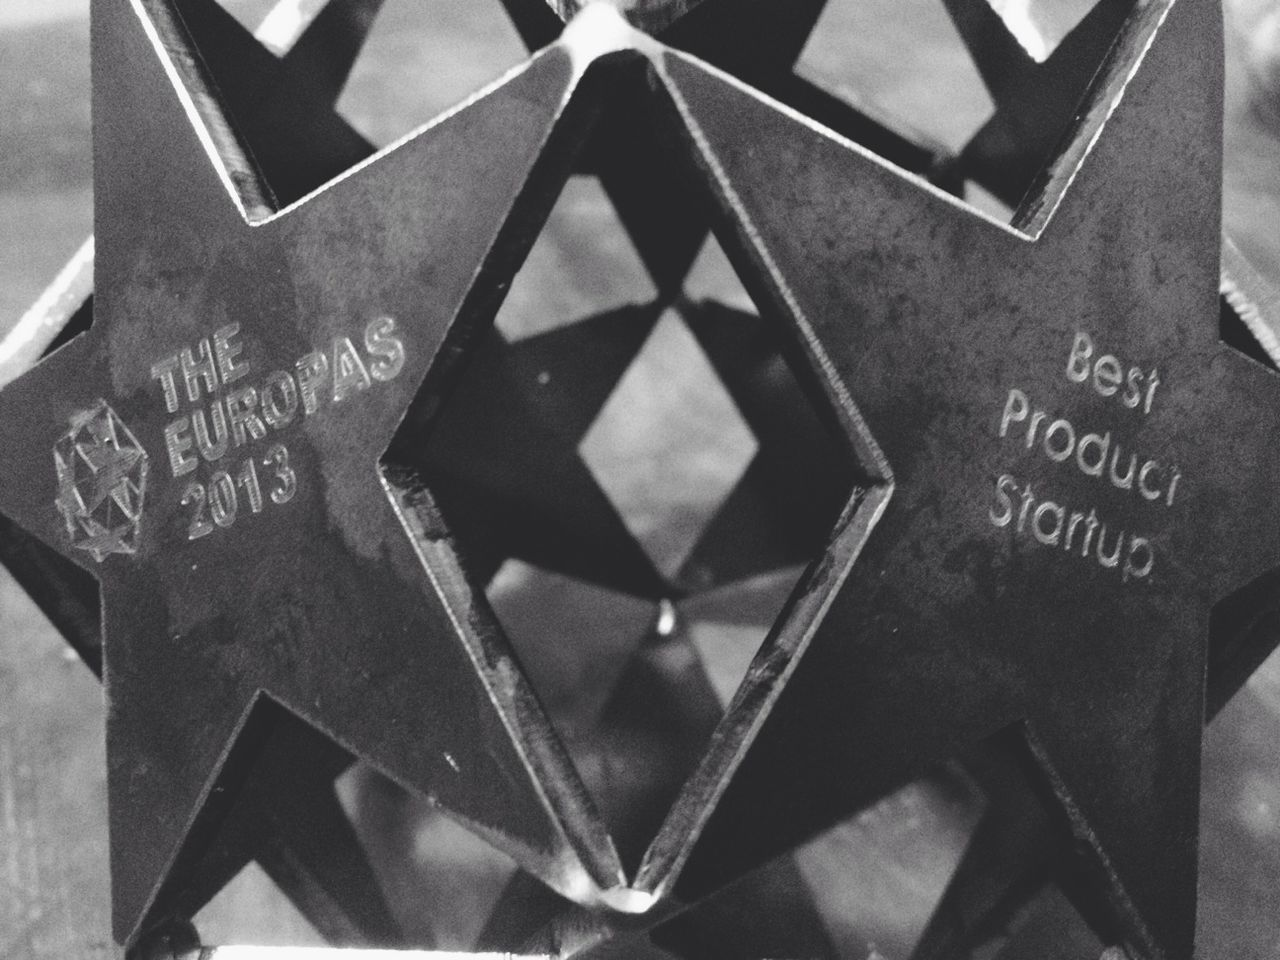 So proud of this passionate bunch of people @EyeEm for taking home Best Product at #TheEuropas 2013